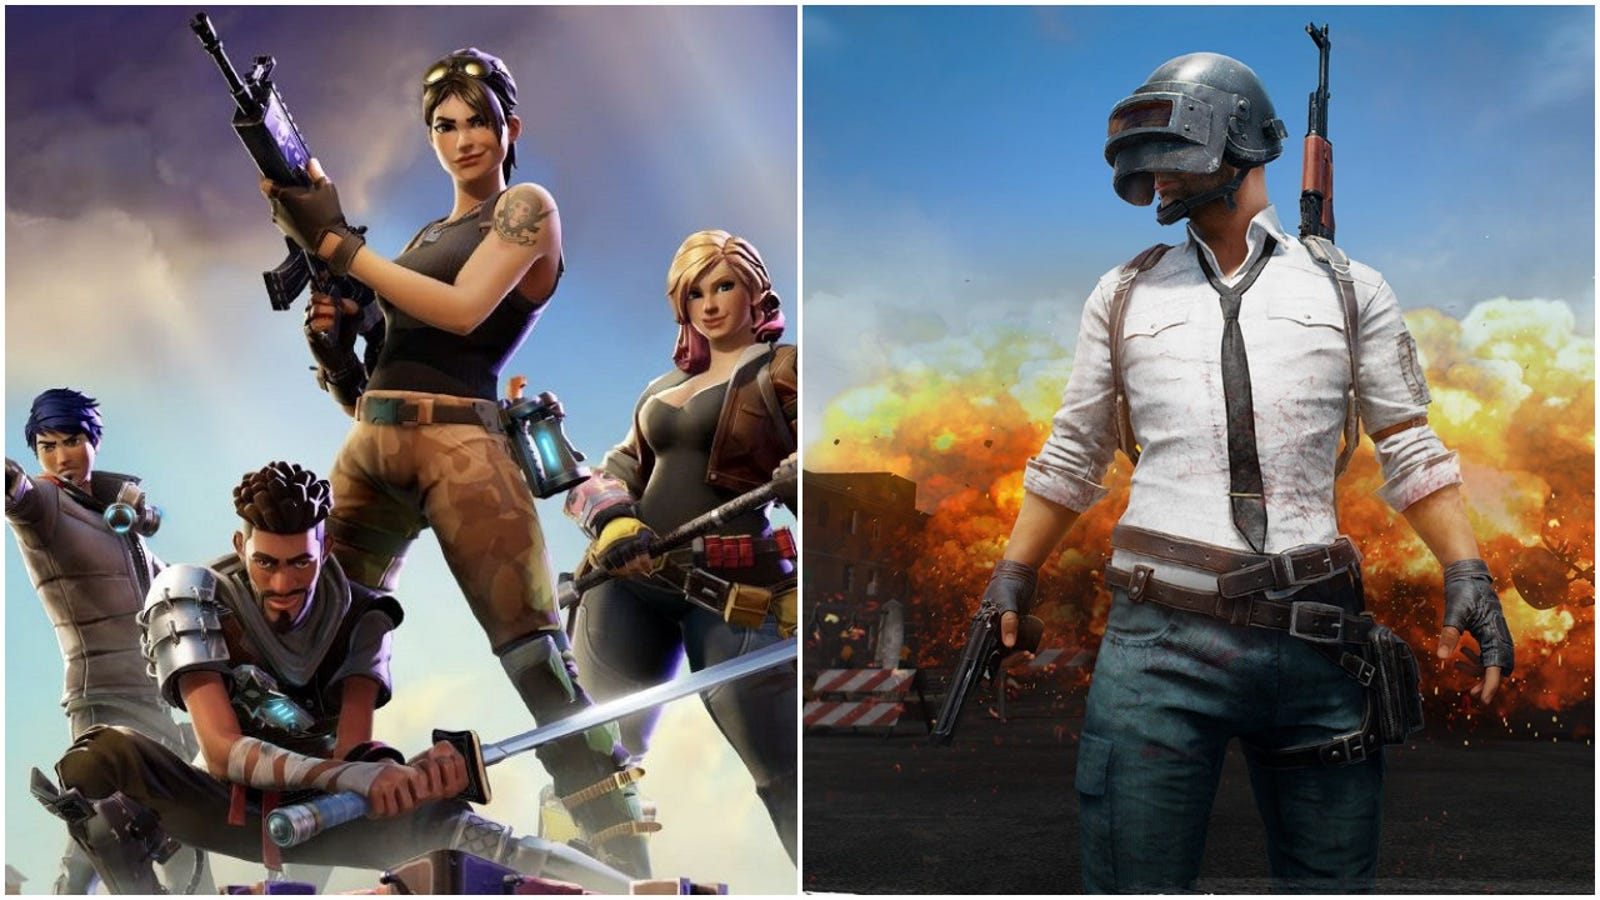 Pubg S Custom Mode Is Free For Now: PlayerUnknown's Battlegrounds Studio Is Suing Over Fortnite